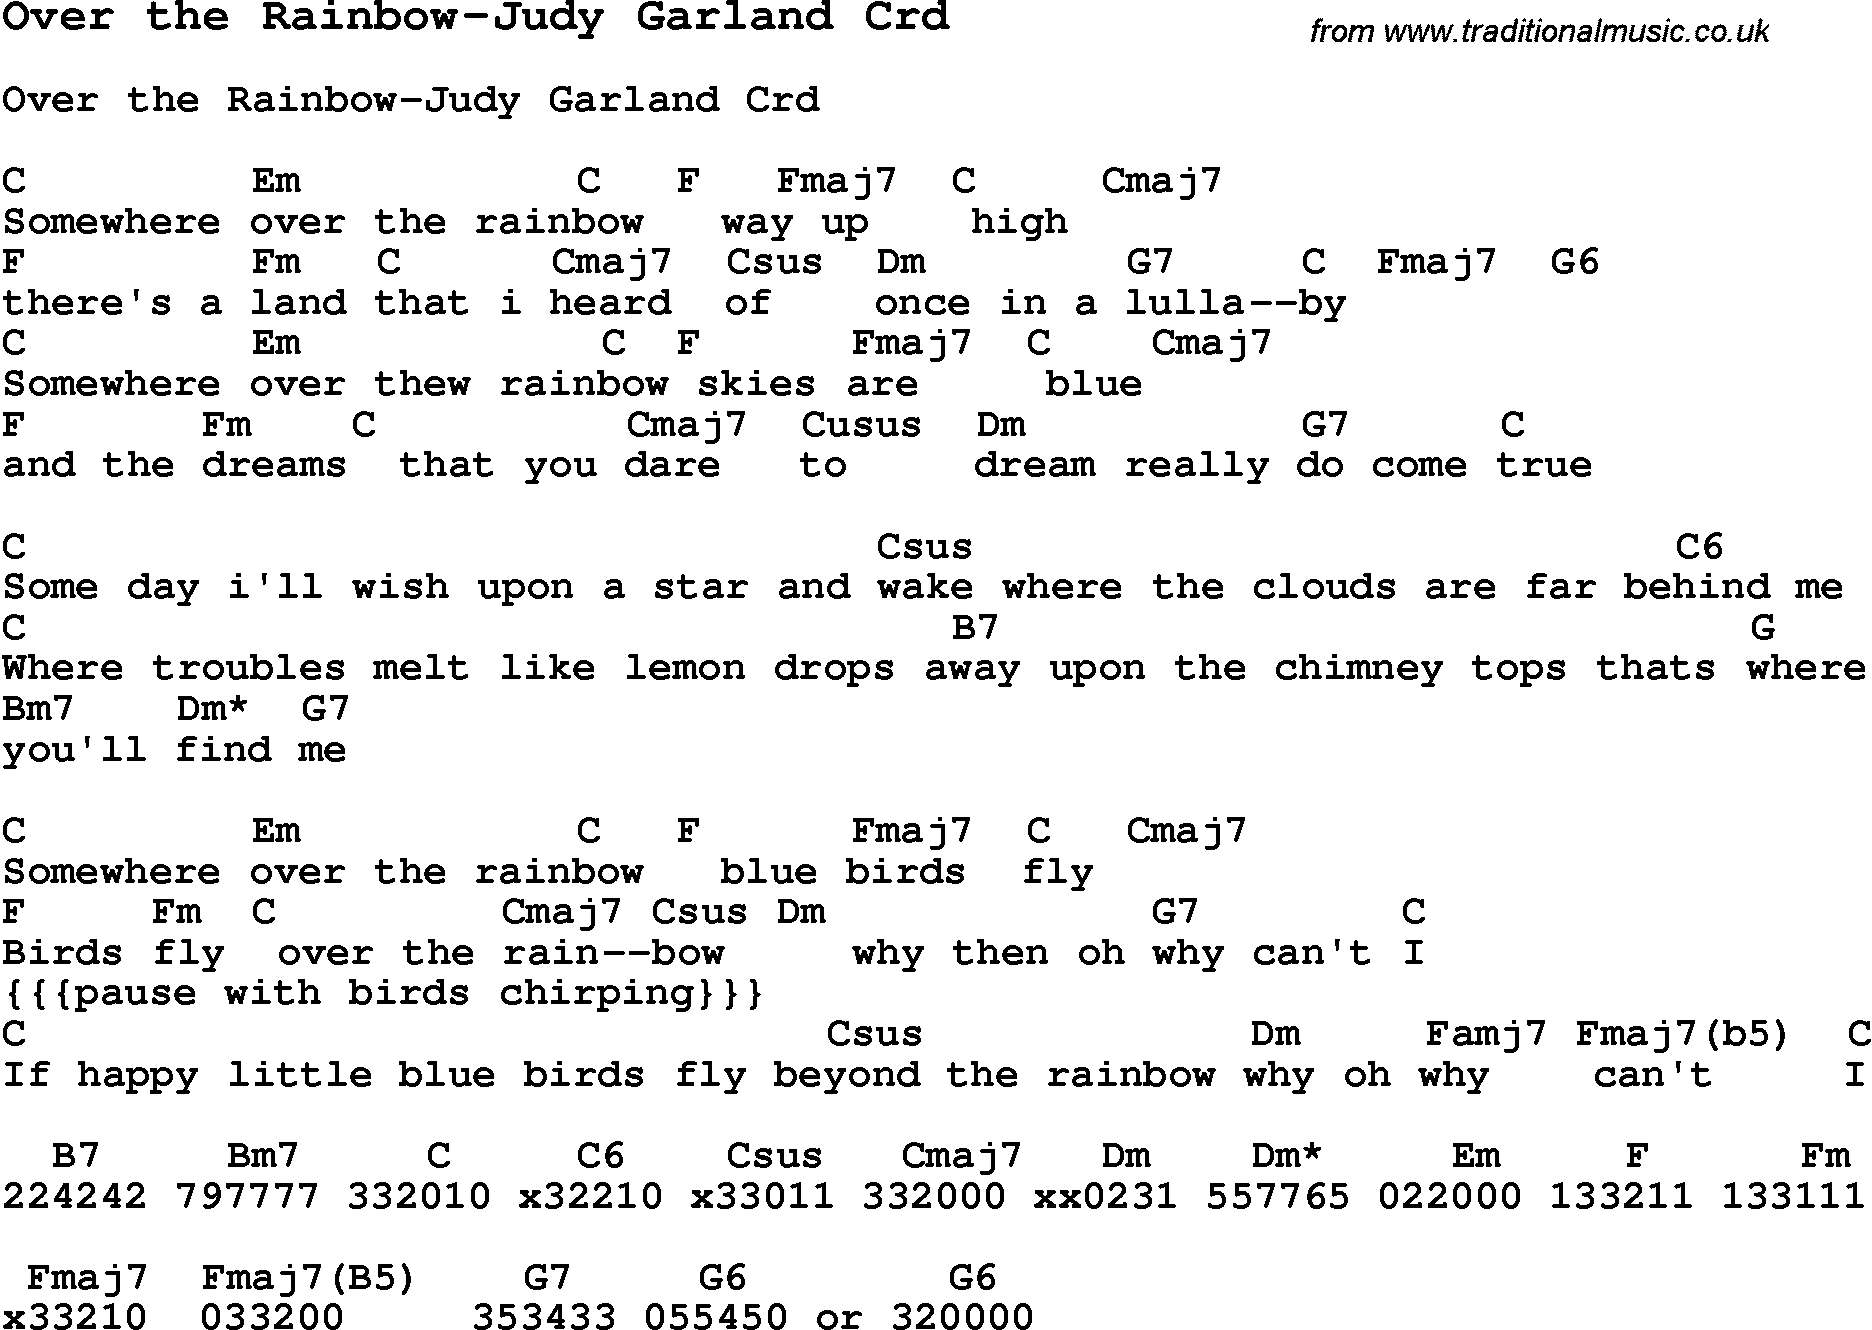 Skiffle Lyrics for: Over The Rainbow-Judy Garland with chords for Mandolin, Ukulele, Guitar ...